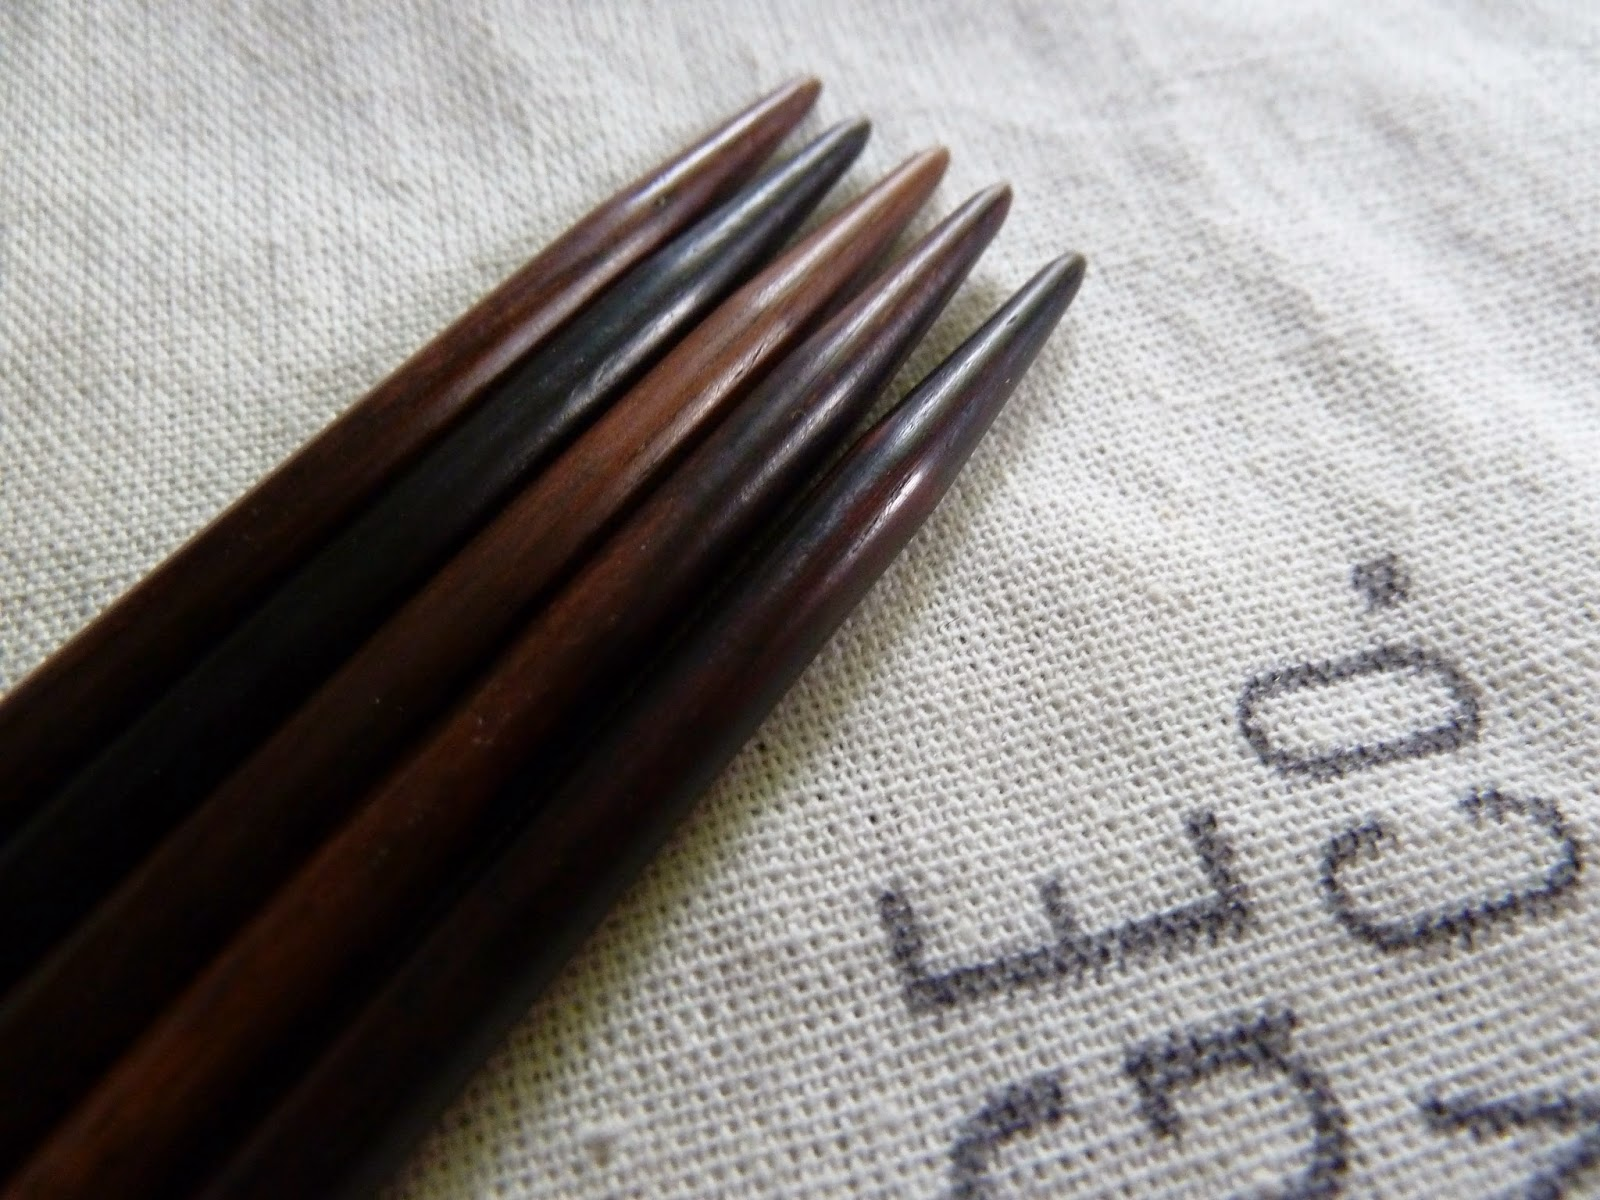 Rosewood DPNs from Fringe Supply Co close up